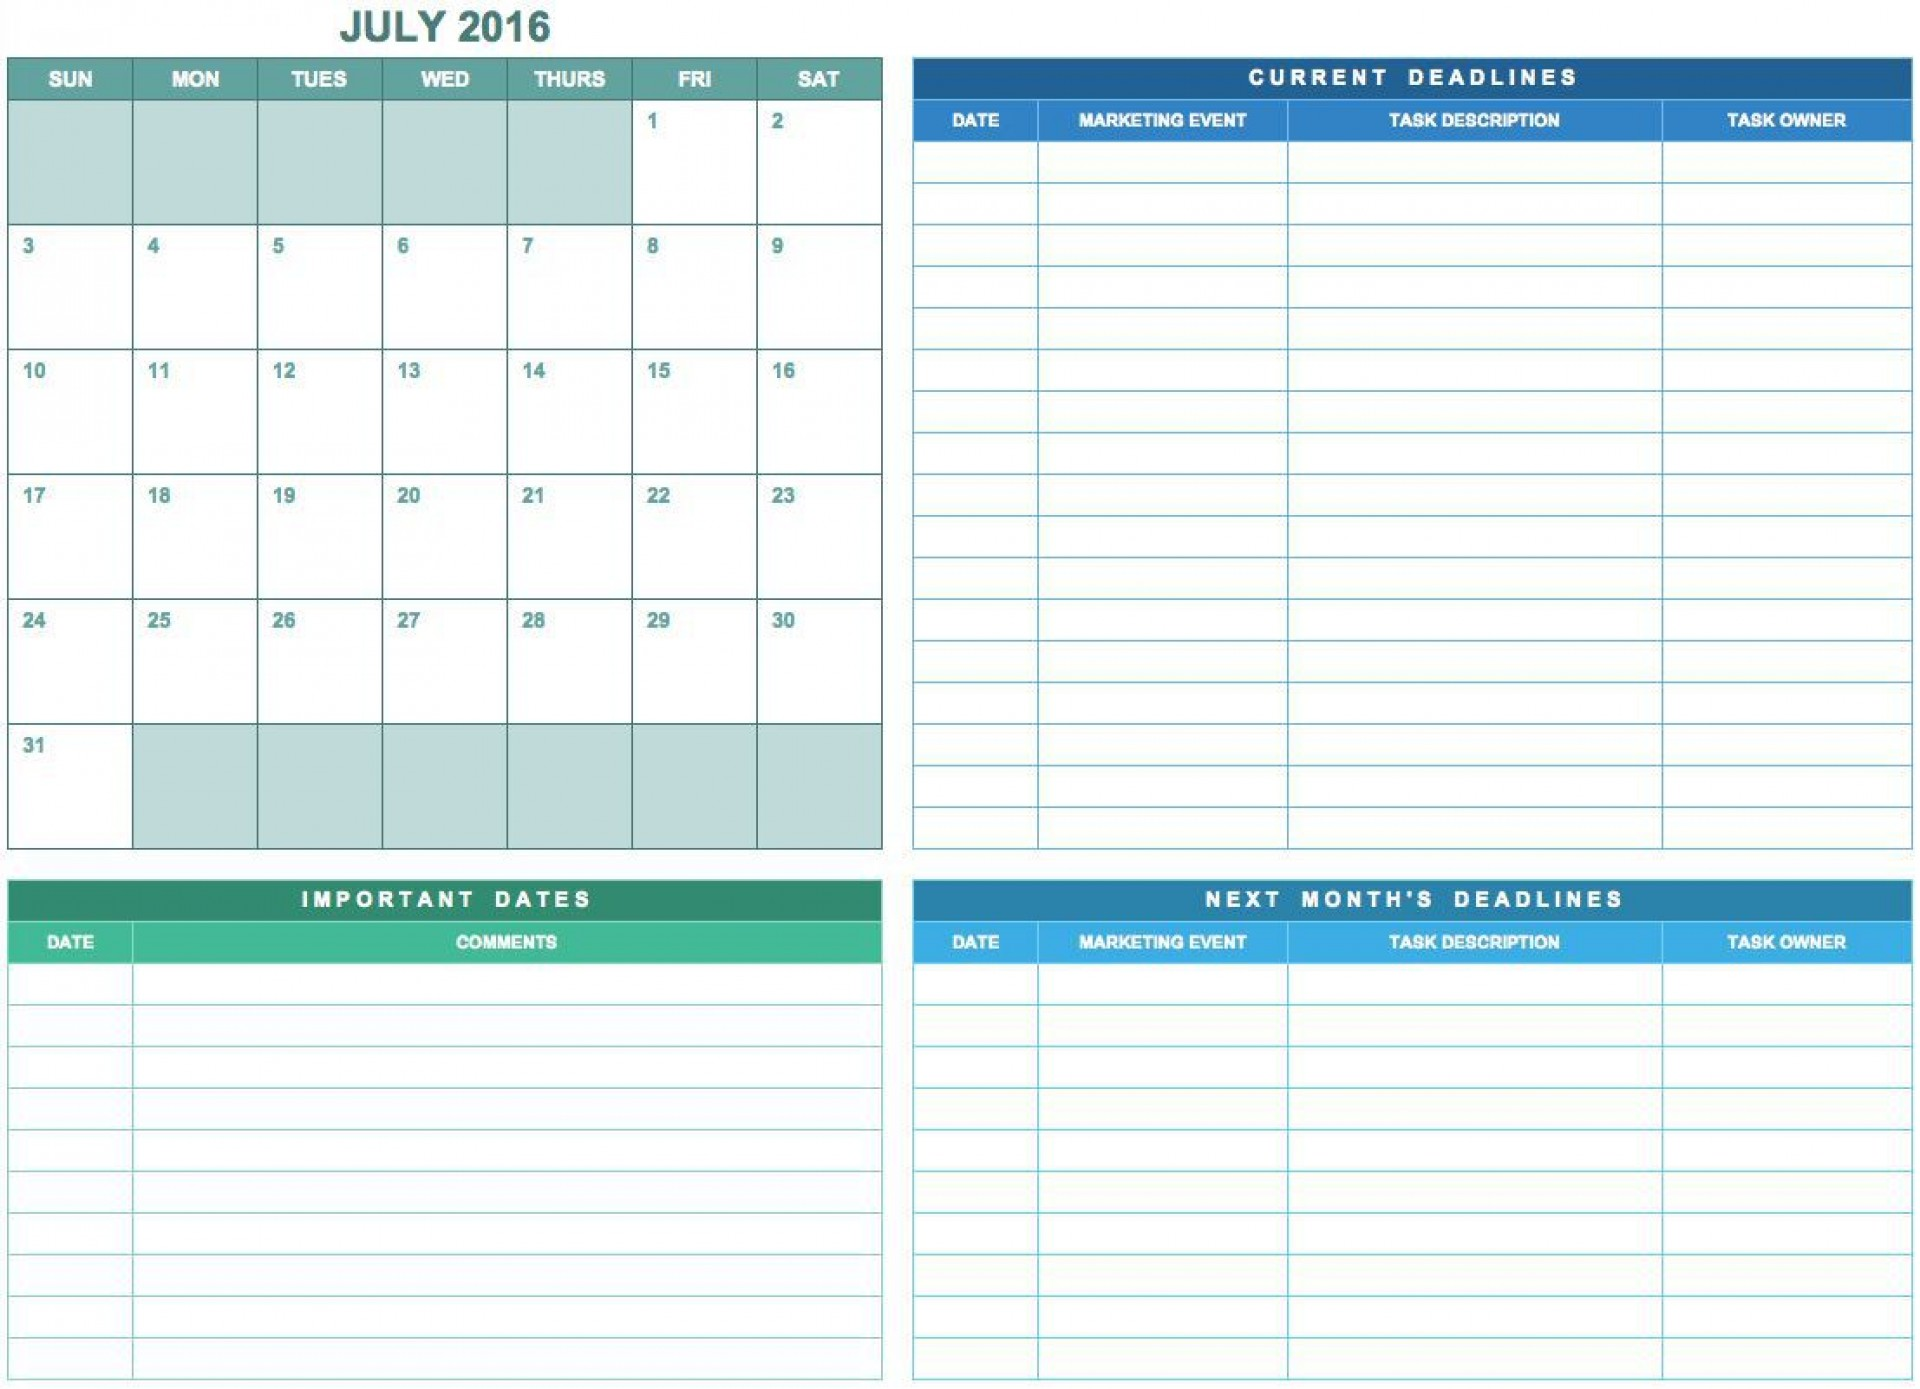 000 Staggering Free Event Calendar Template Highest Clarity  Html For Website1920